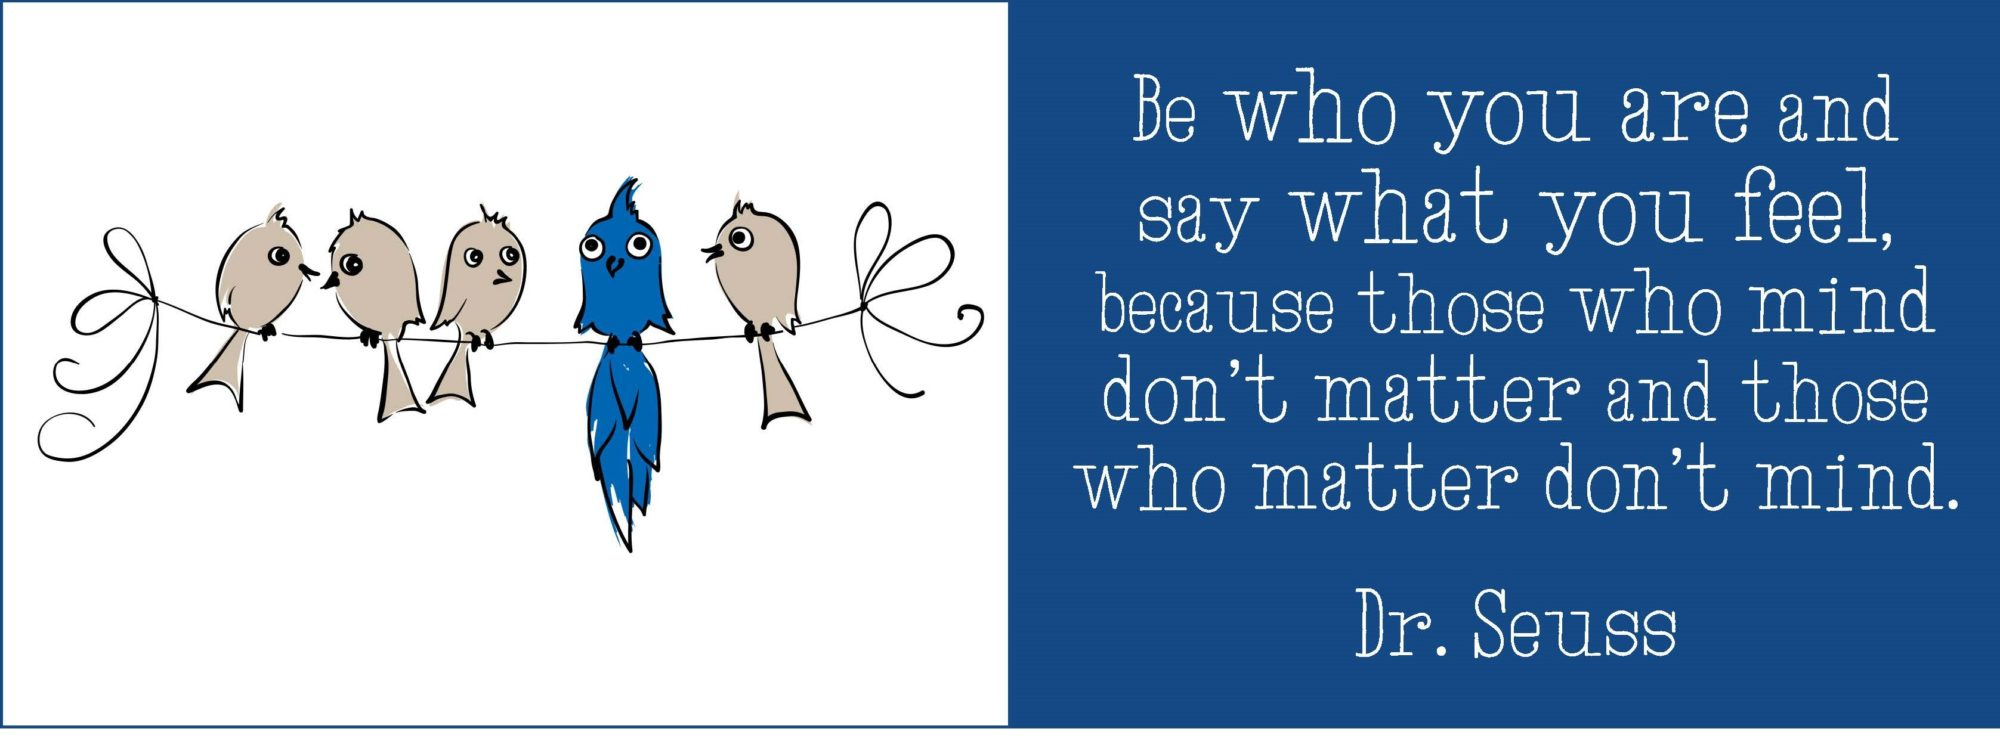 Be Who You Are Quote Dr. Seuss